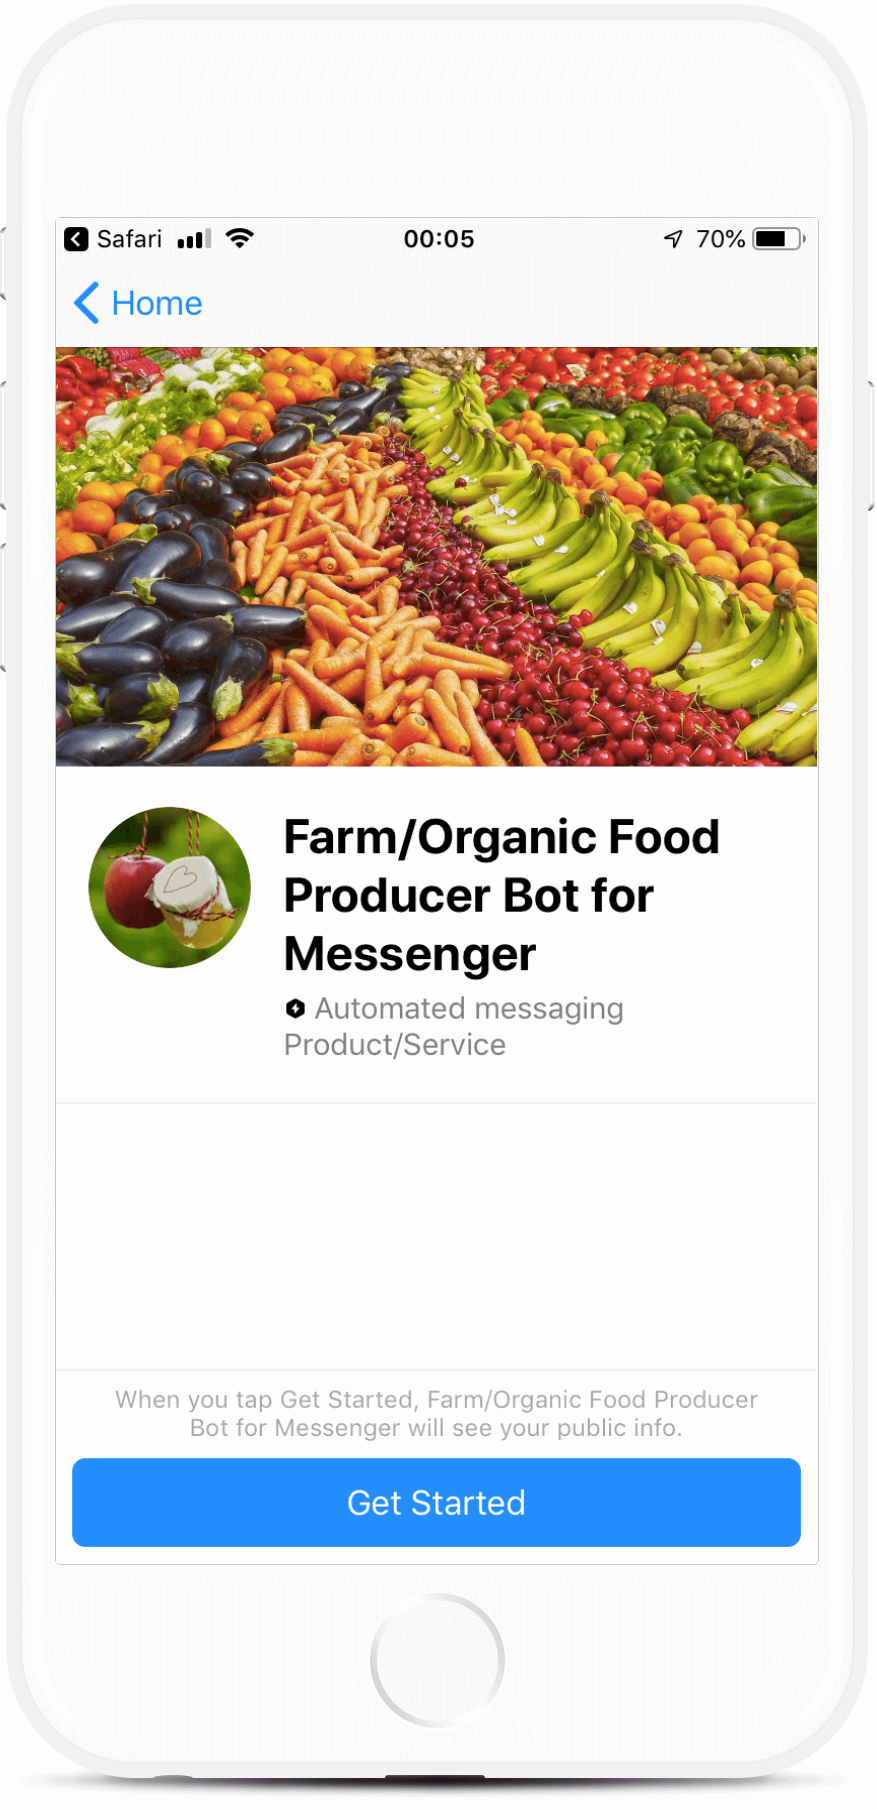 Farm/Organic Food Producer Bot for Messenger